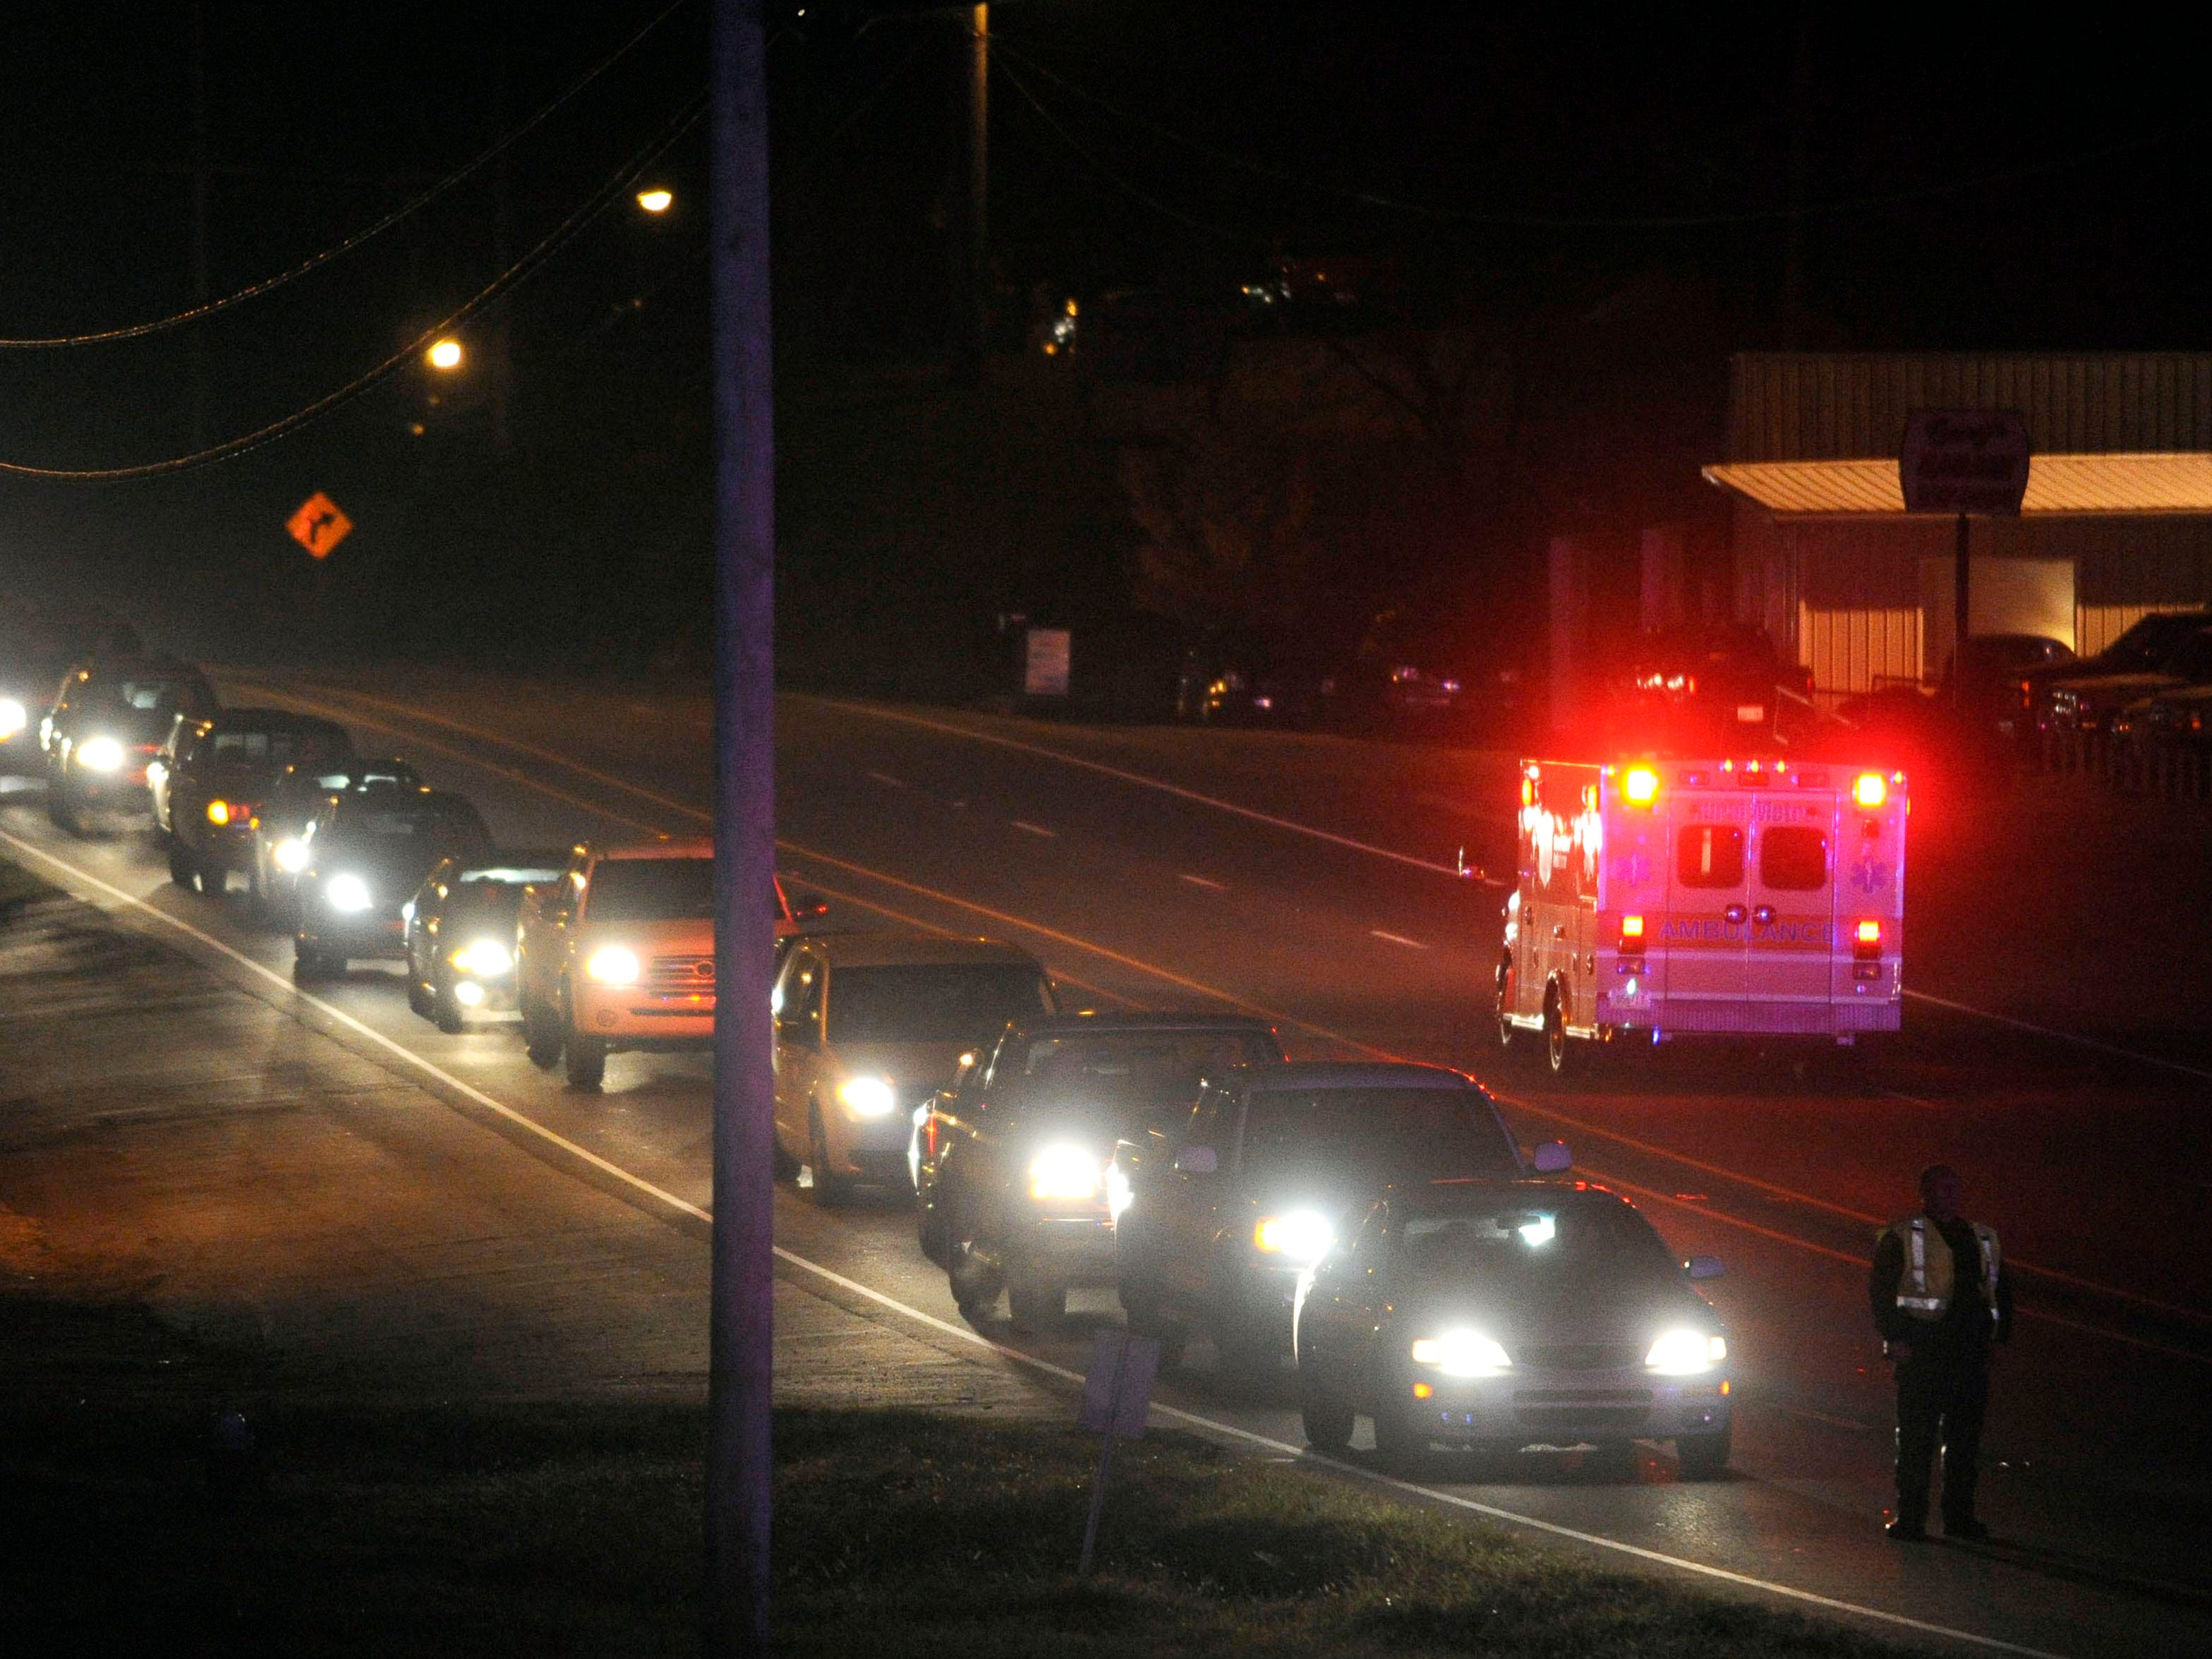 An ambulance leaves the Chatterbox Tavern in south Knox County as traffic backs up on Chapman Highway on Thursday, Nov. 13, 2014.